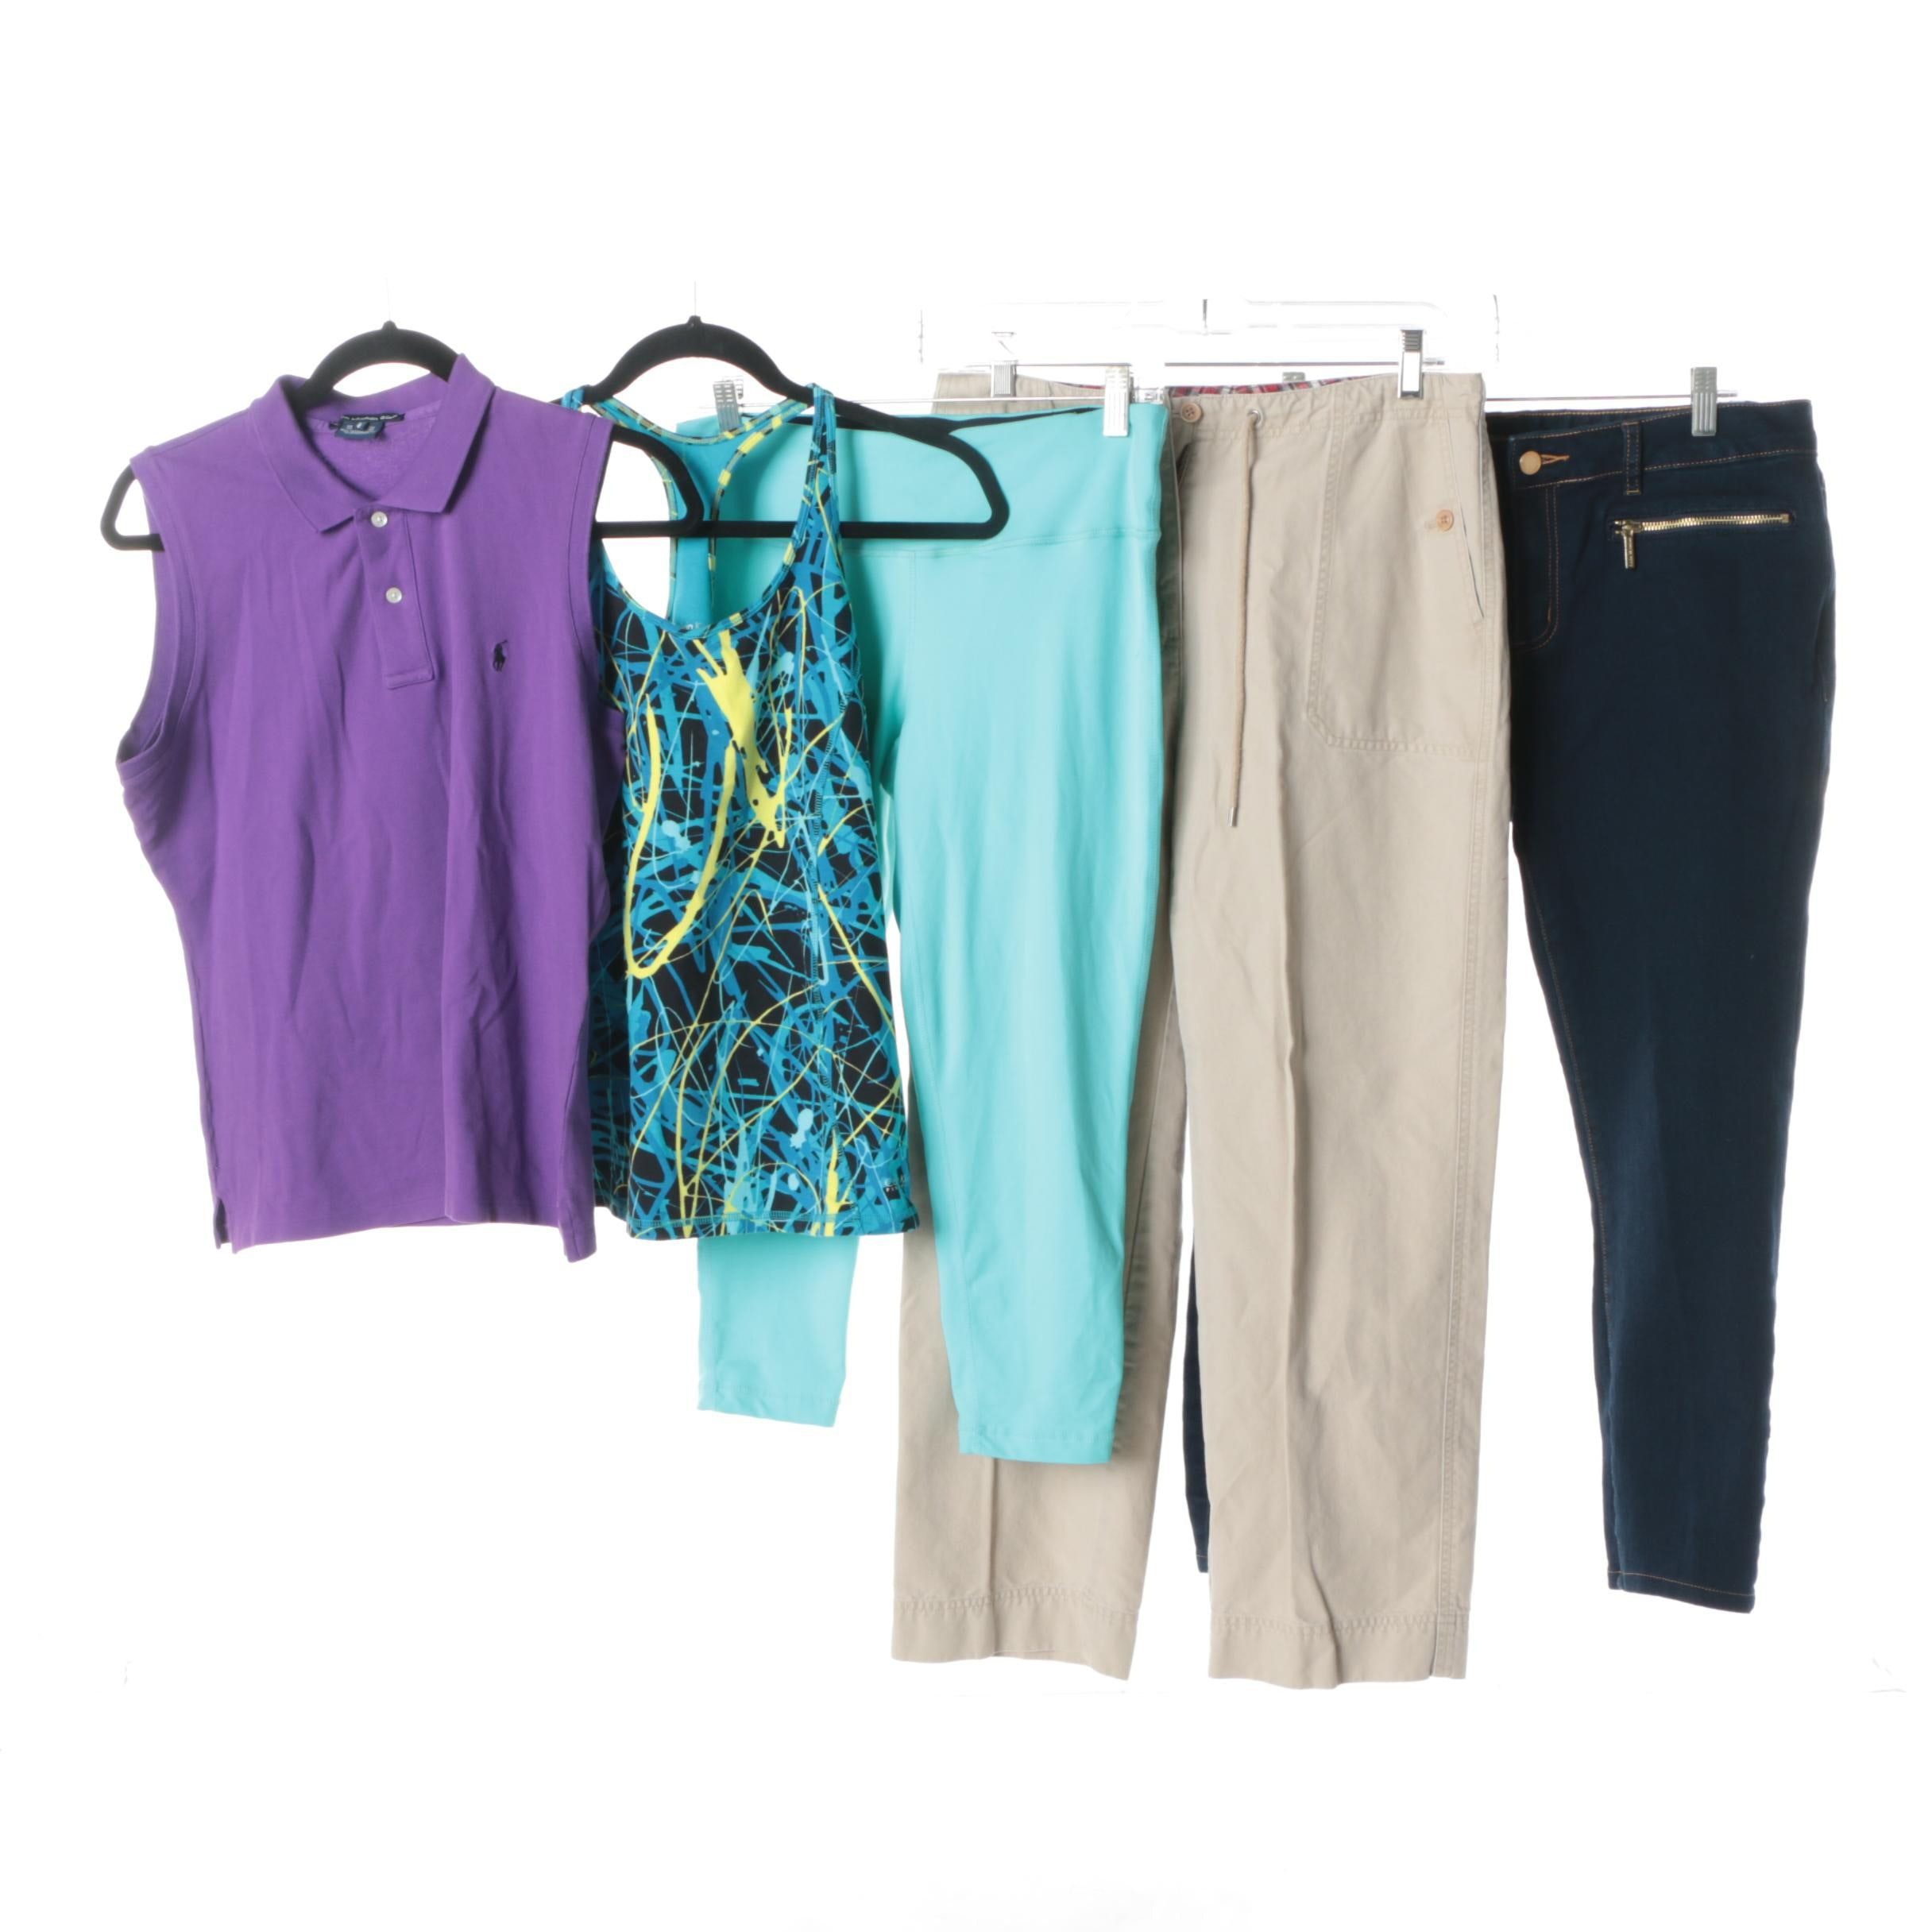 Women's Activewear and Pants Including MICHAEL Michael Kors and Calvin Klein